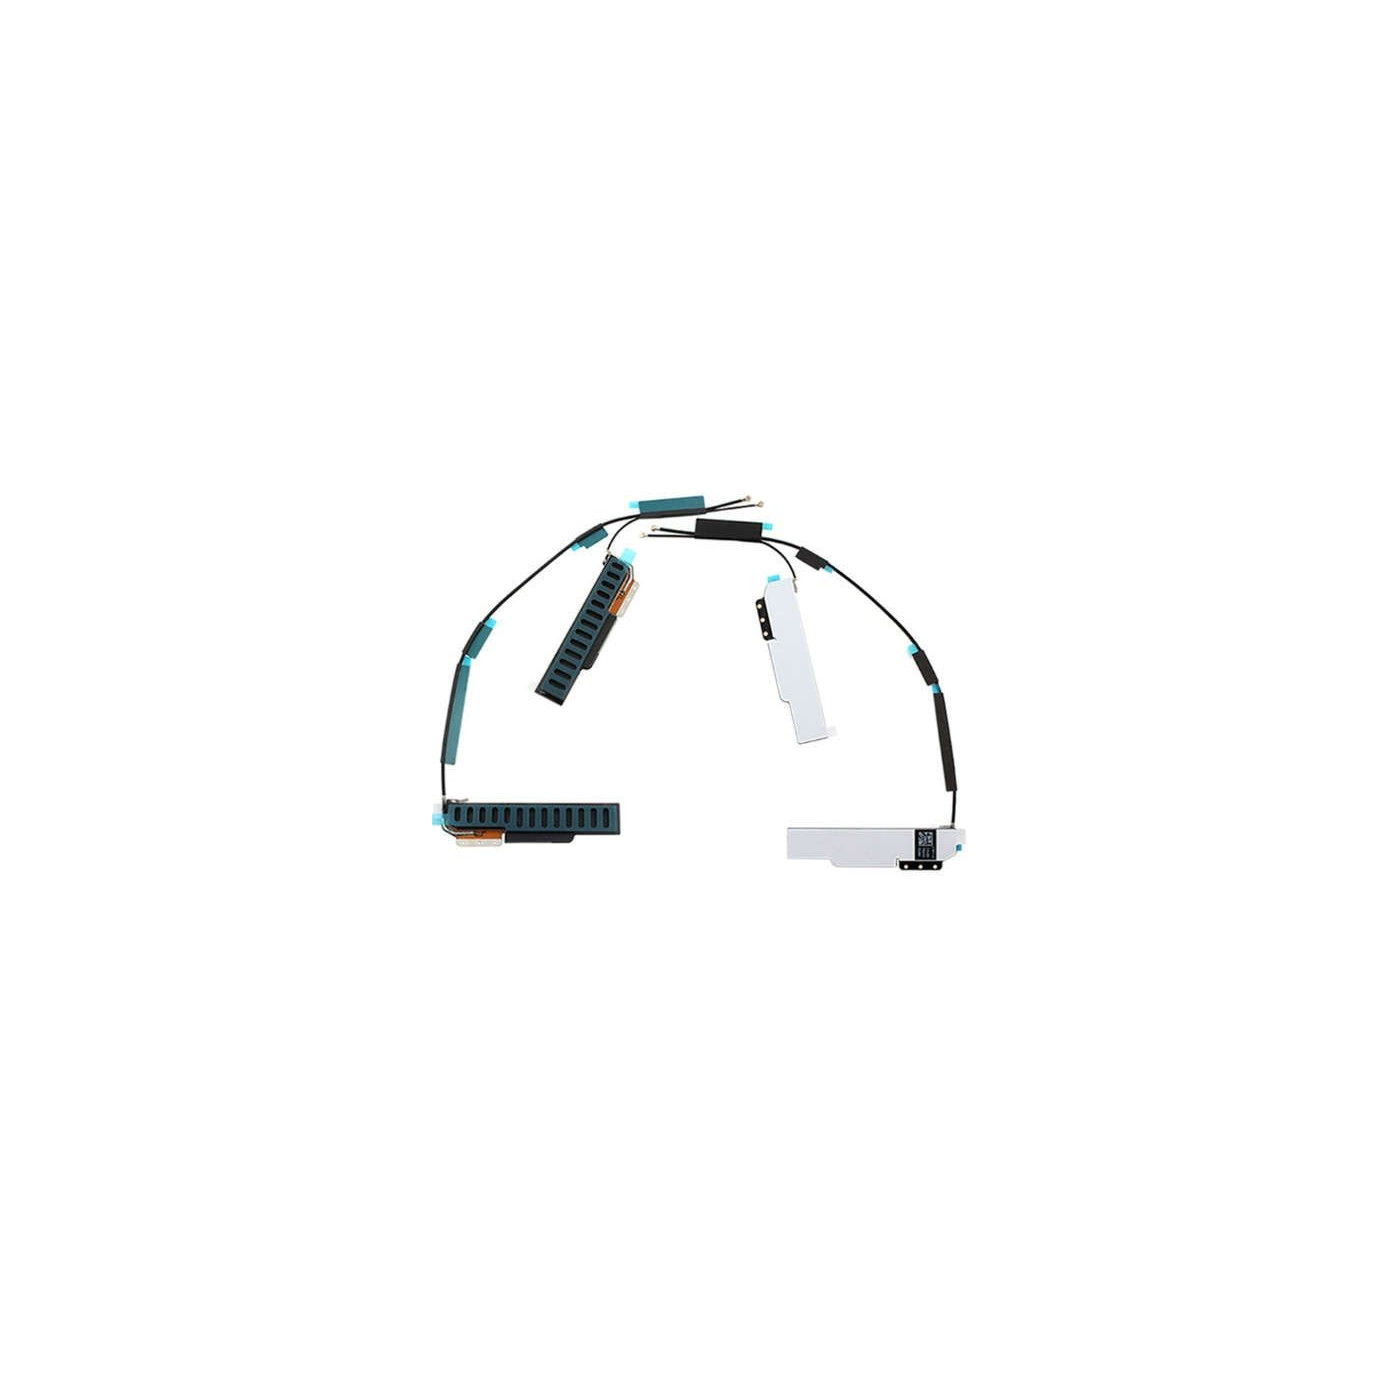 Antenne GPS wifi apple ipad air 2 flex plat